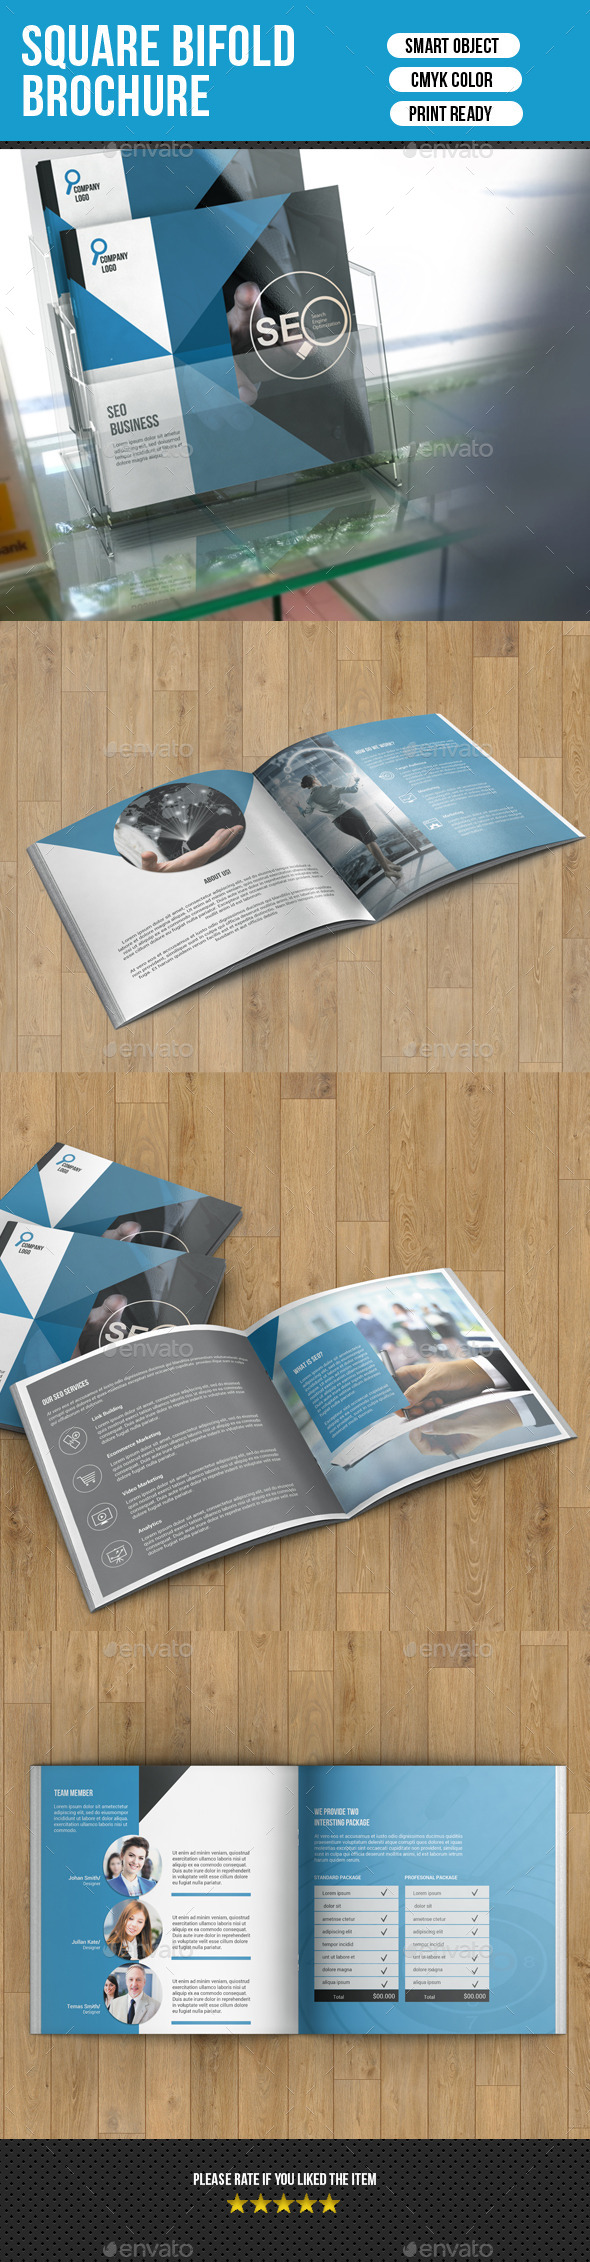 Corporate Square Bifold Brochure-V08 - Corporate Brochures